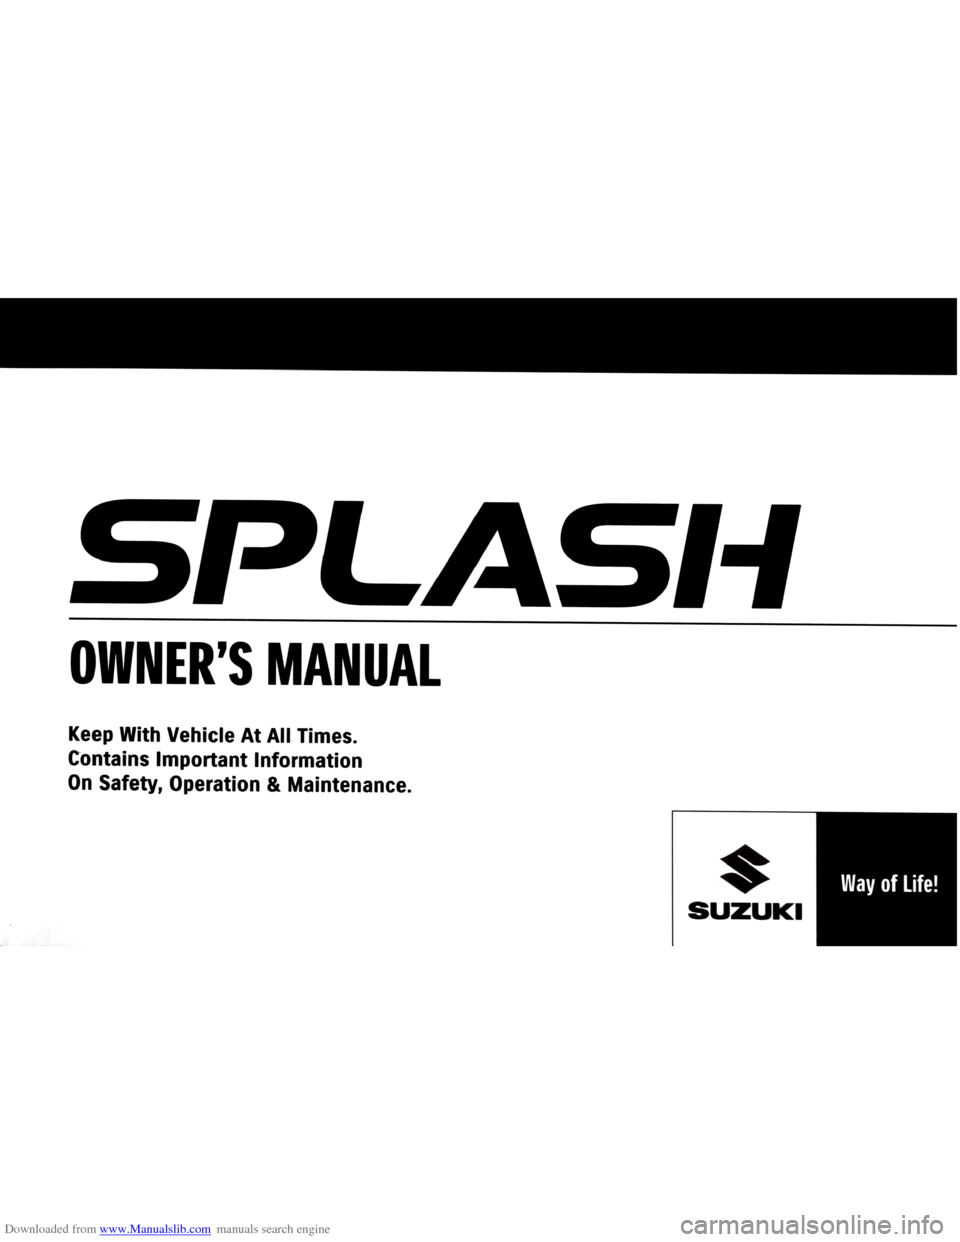 SUZUKI SPLASH 2005 1.G Owners Manual